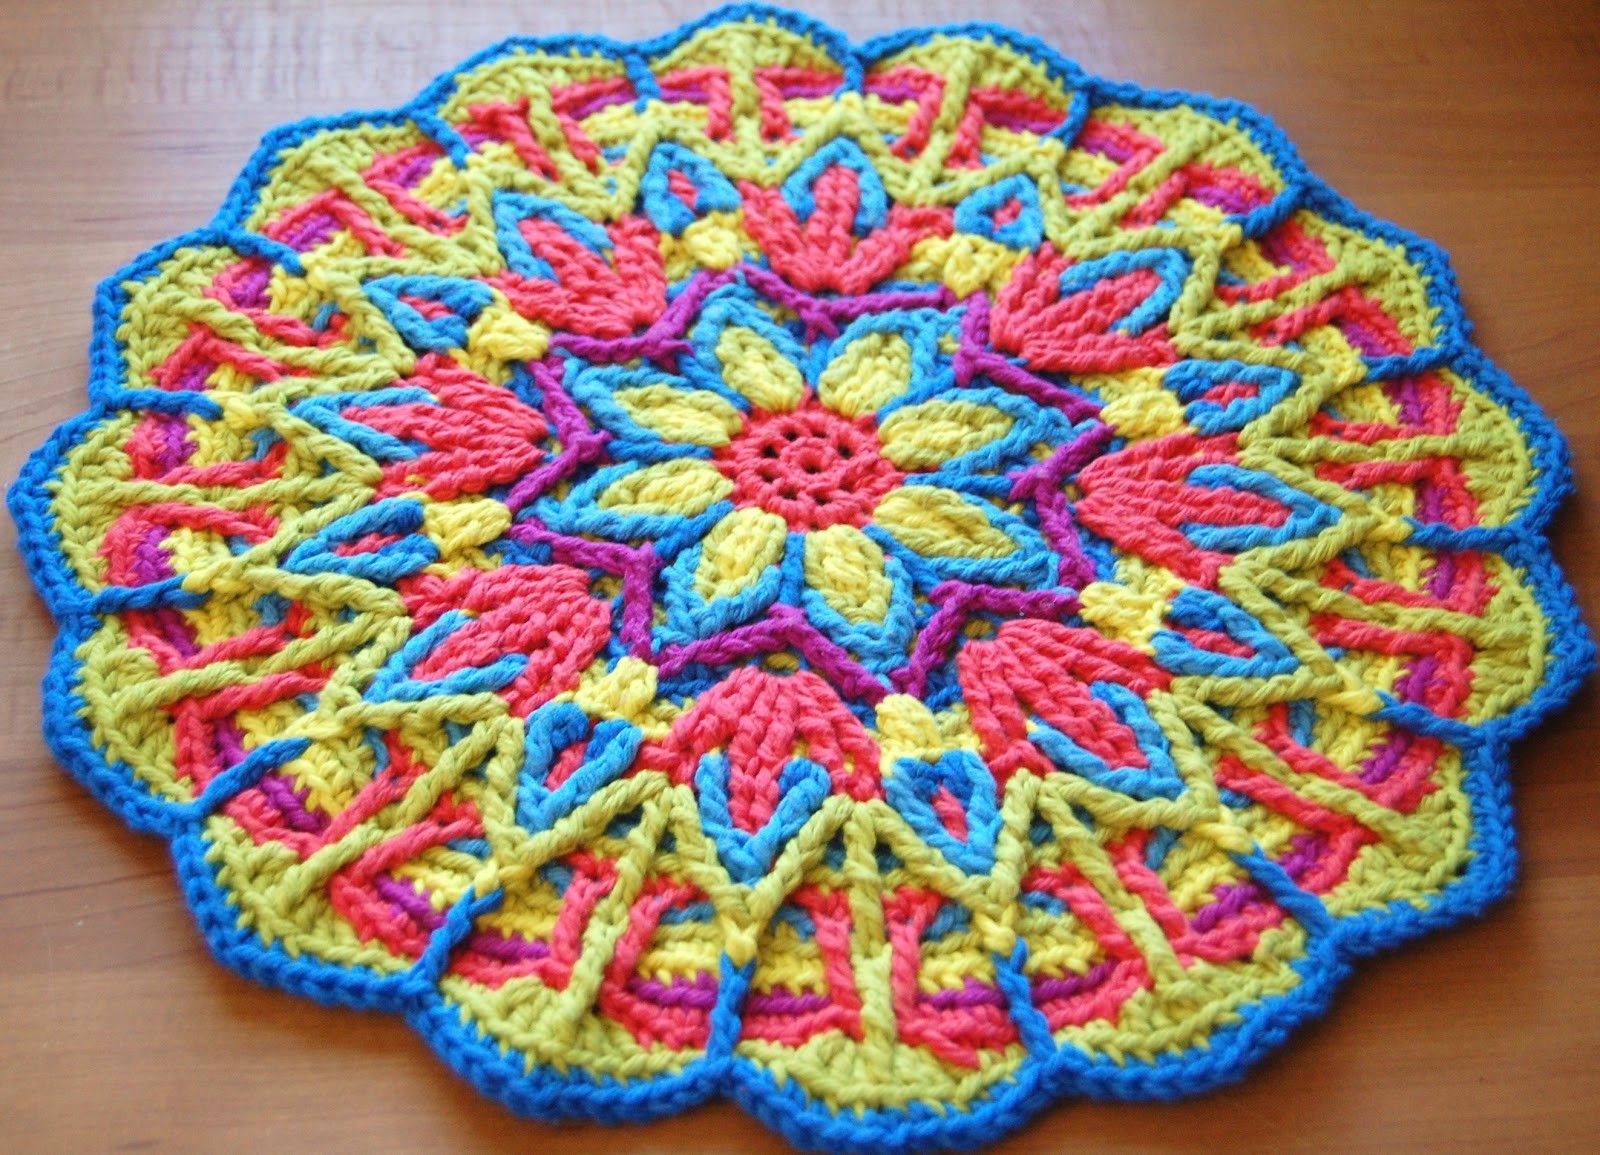 Best Of Mandalas & Dromenvangers On Pinterest Mandala Crochet Patterns Of Beautiful 48 Pictures Mandala Crochet Patterns